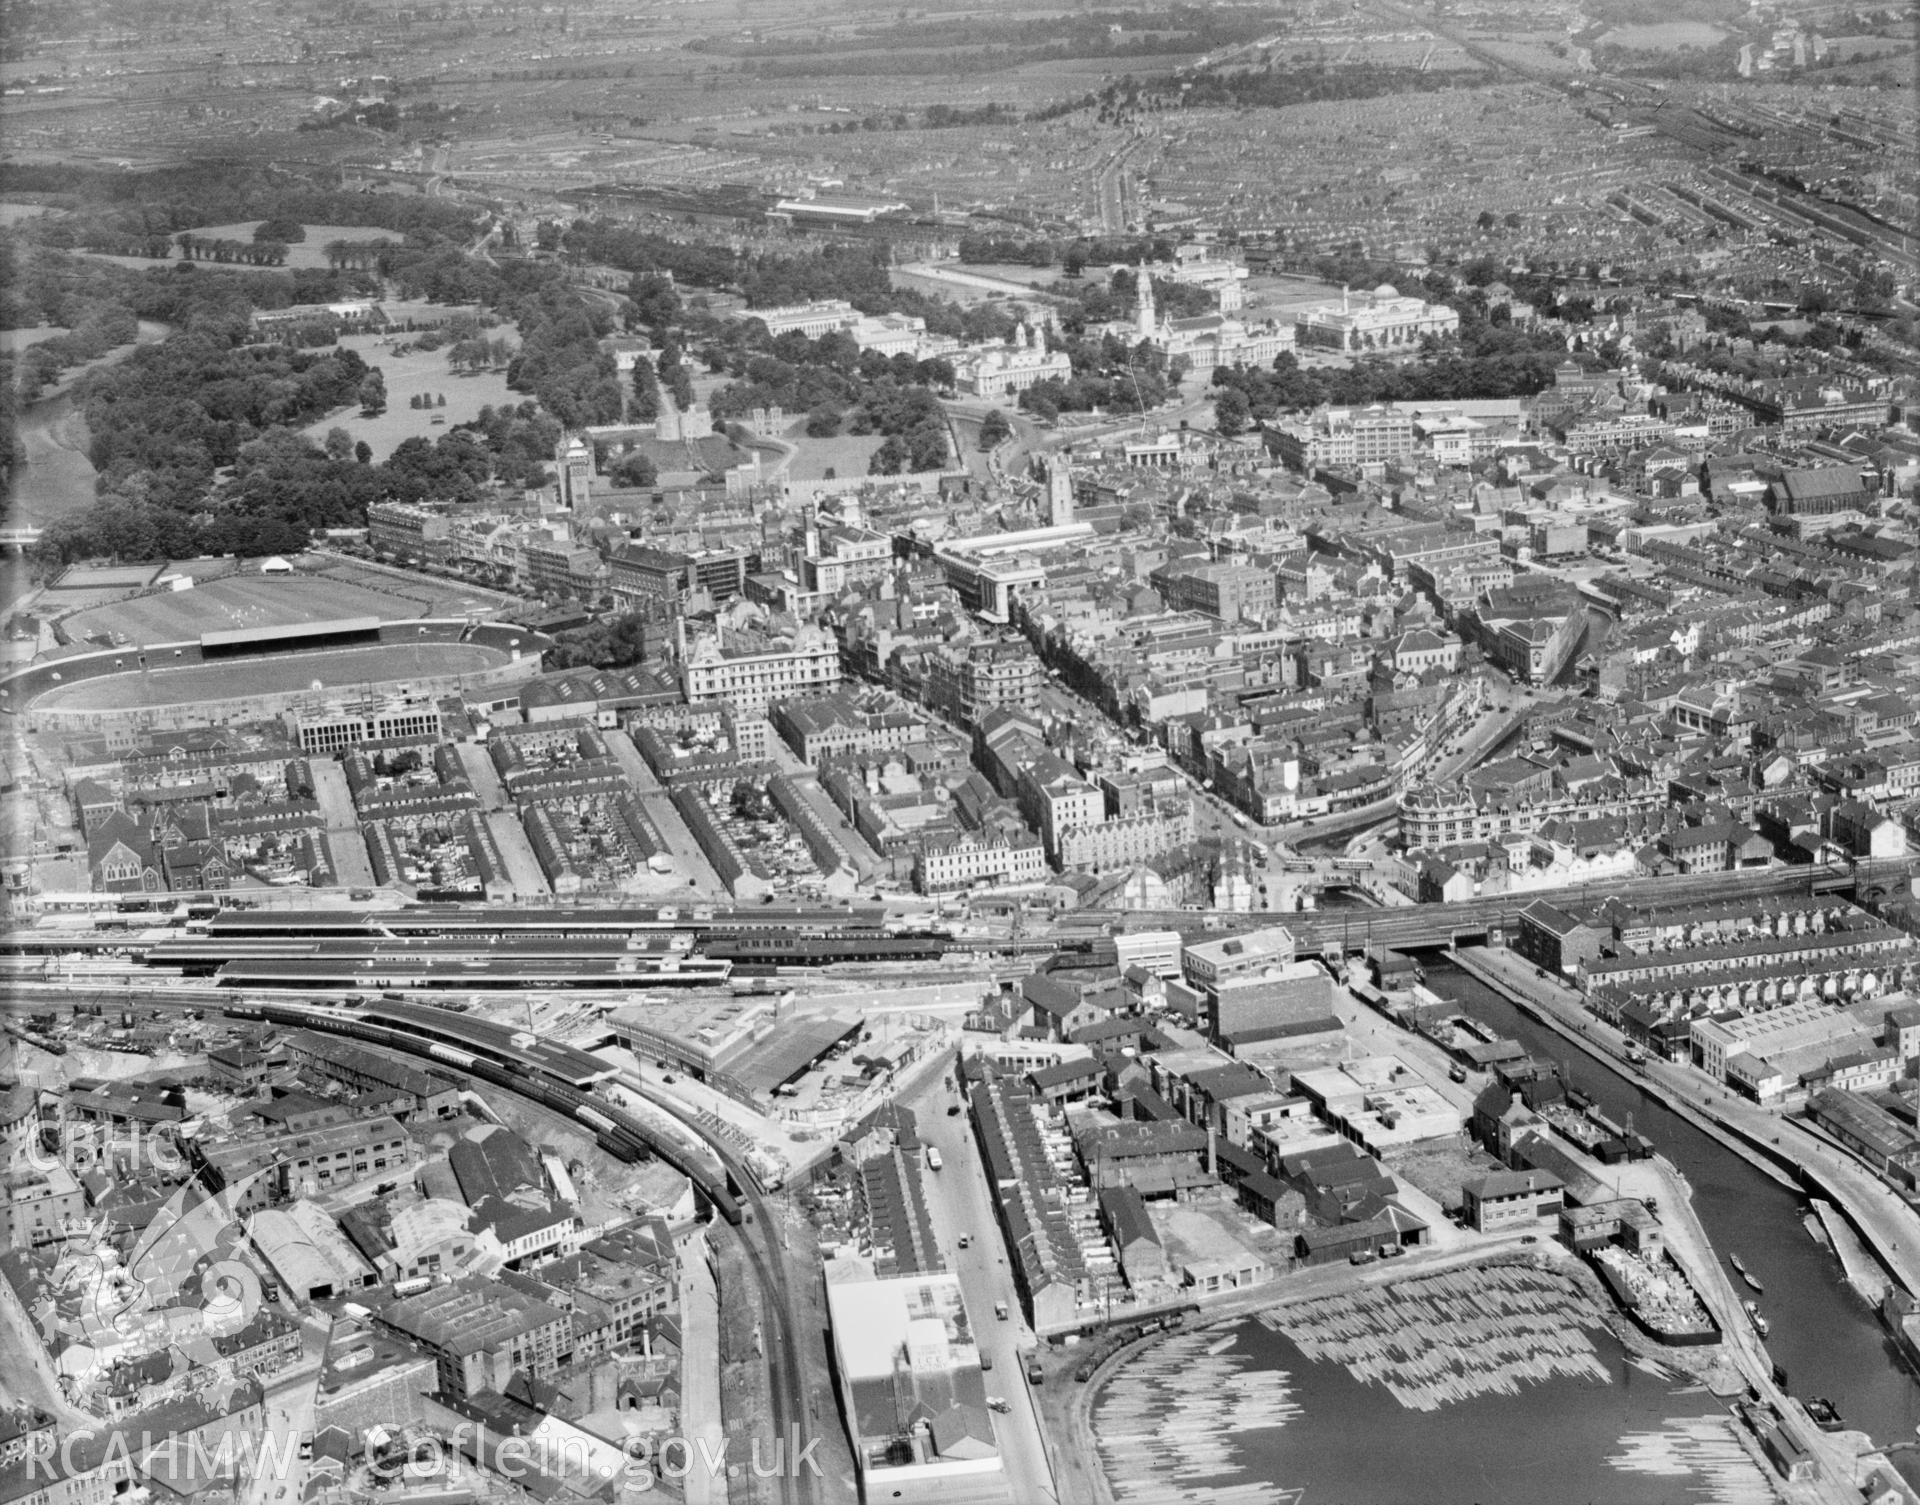 General view of Cardiff, oblique aerial view. 5?x4? black and white glass plate negative.